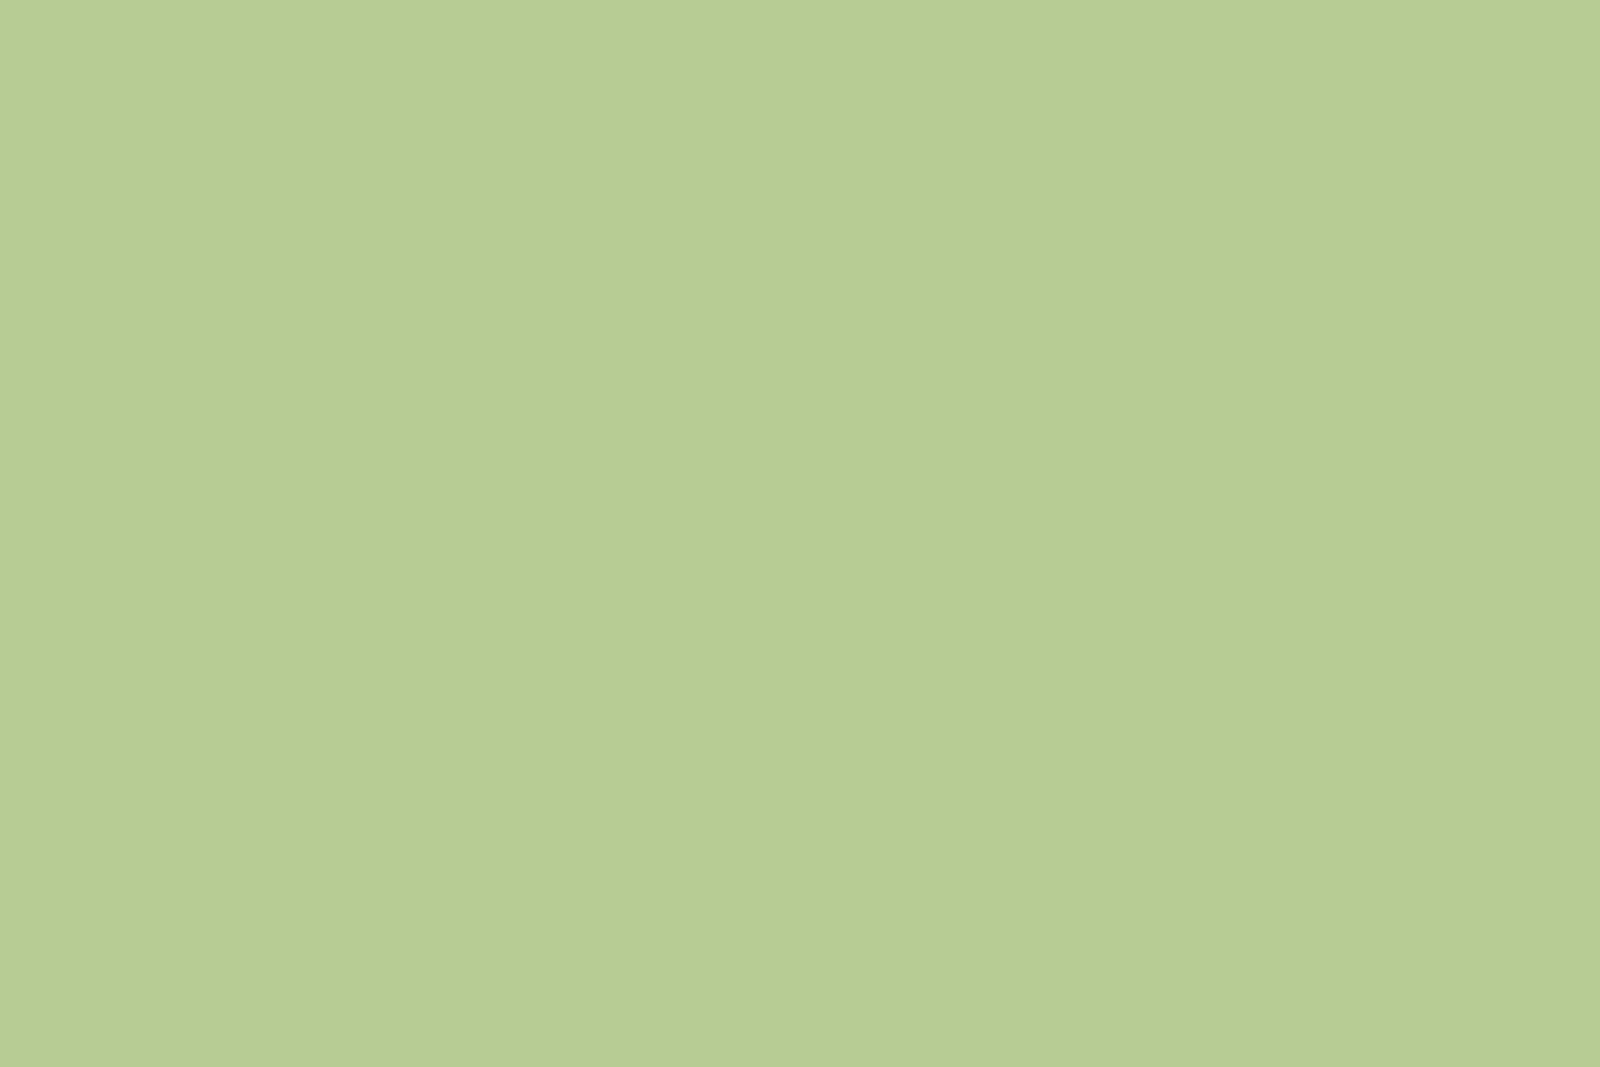 Sarah dawn designs fashion color trends meet the green - The color sage green ...